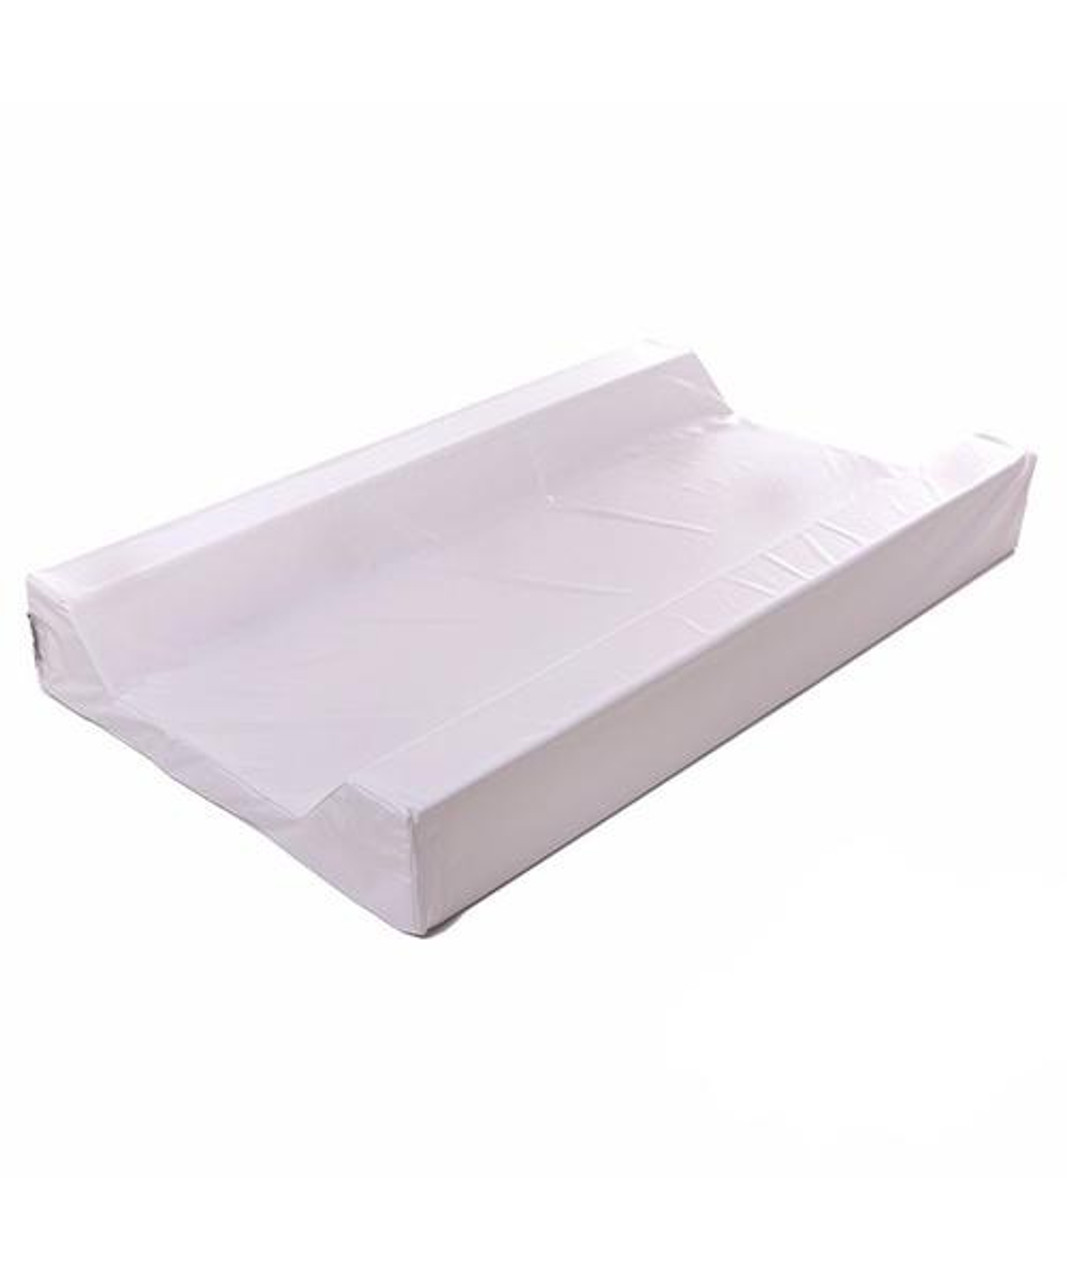 Heavenly Dreams Change Table Pad at Baby Barn Discounts Heavenly Dreams Change Table Pads are of superior quality and all Australian made containing NO PVC.